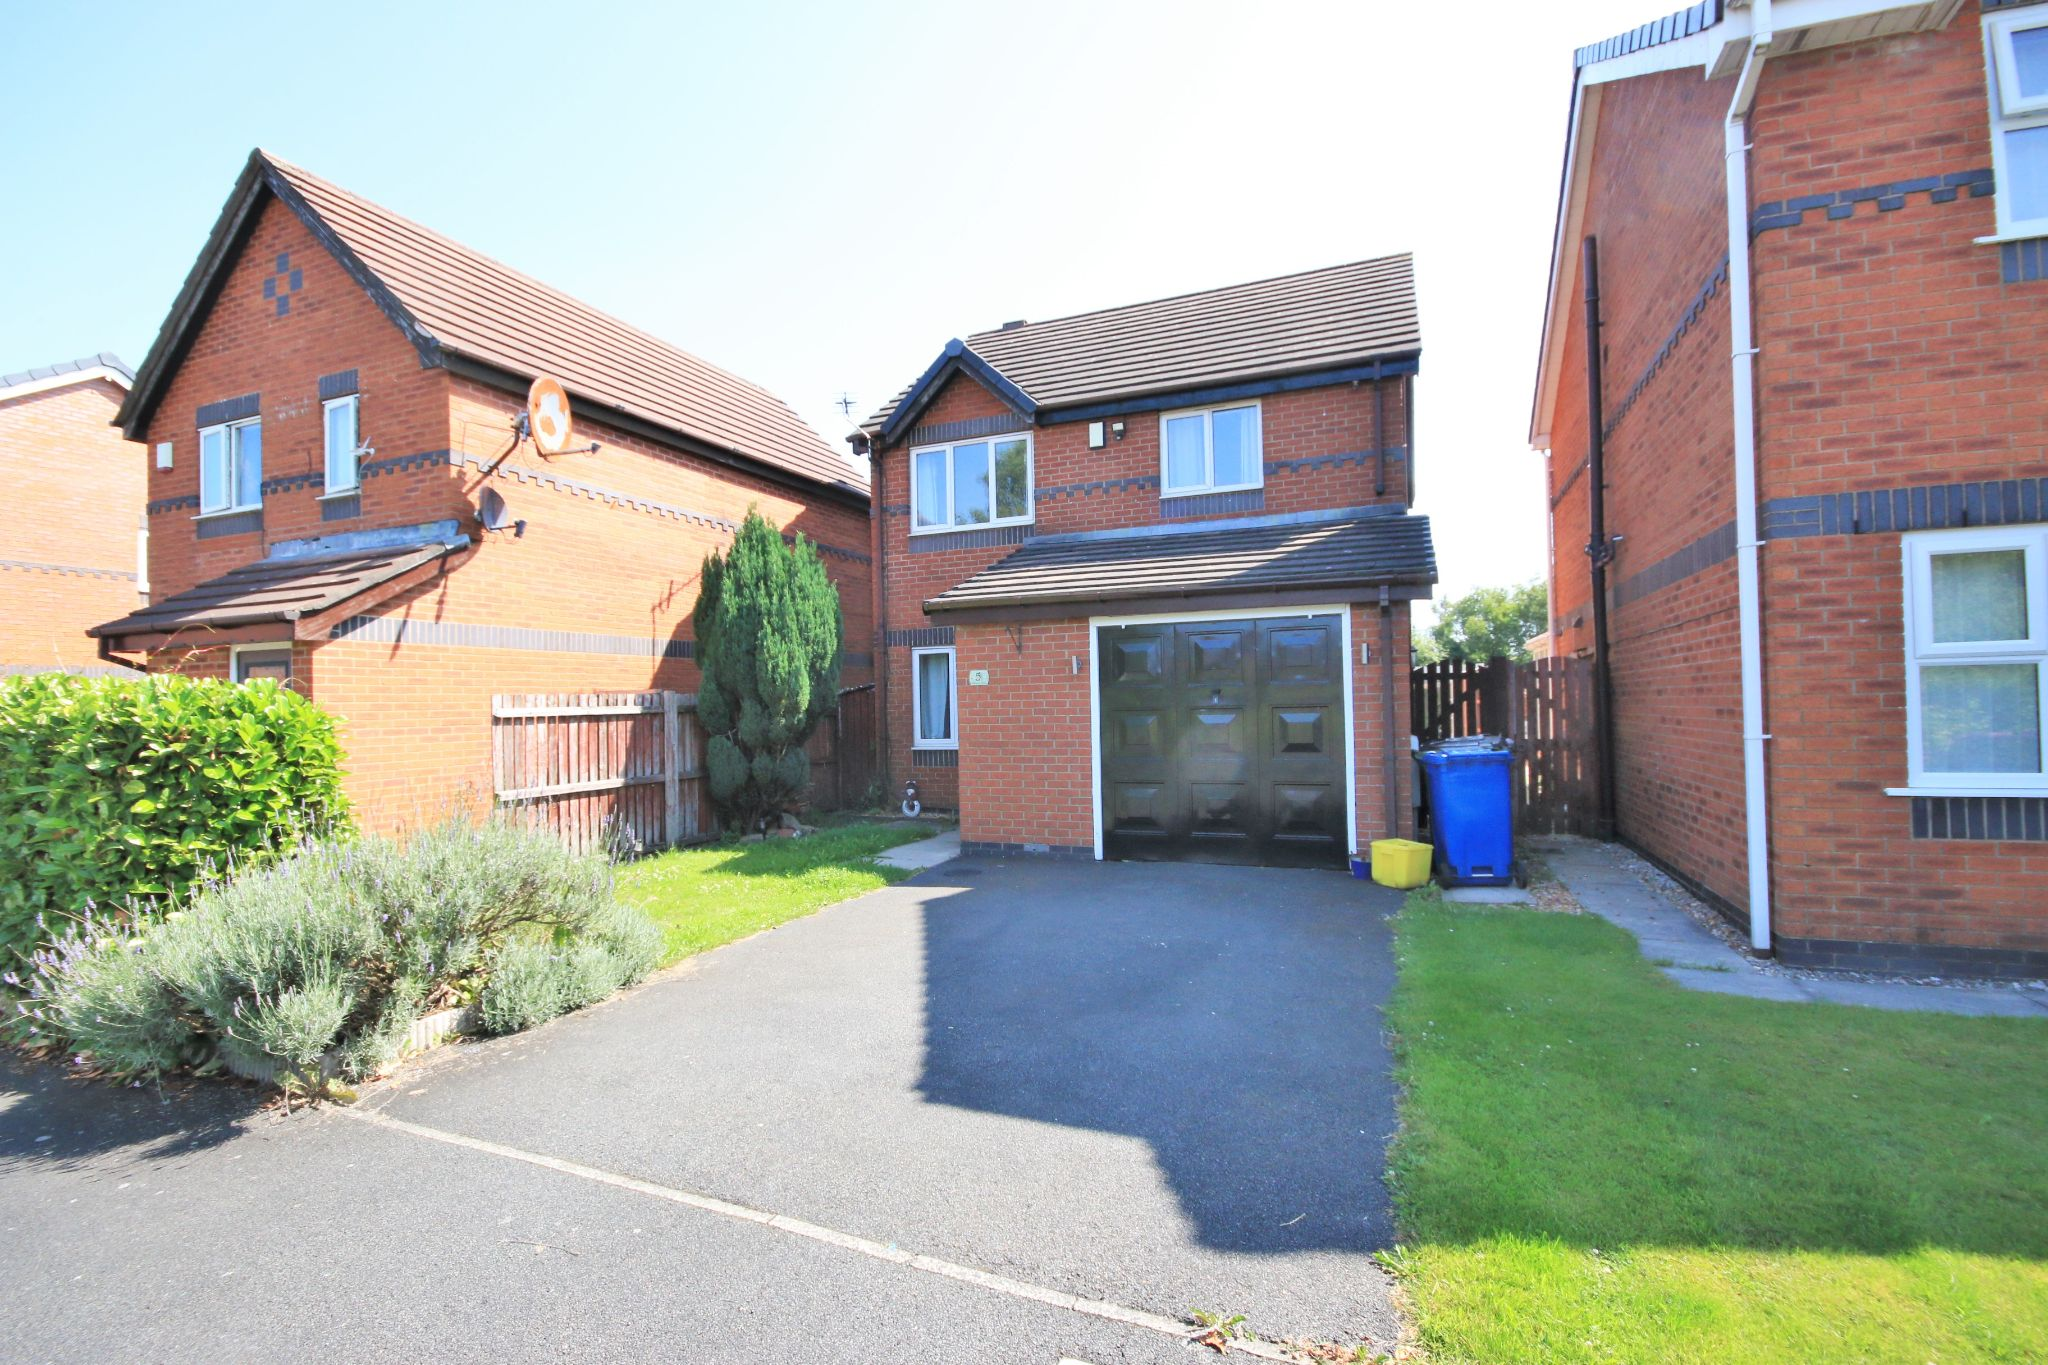 3 bedroom detached house SSTC in Wigan - Photograph 1.